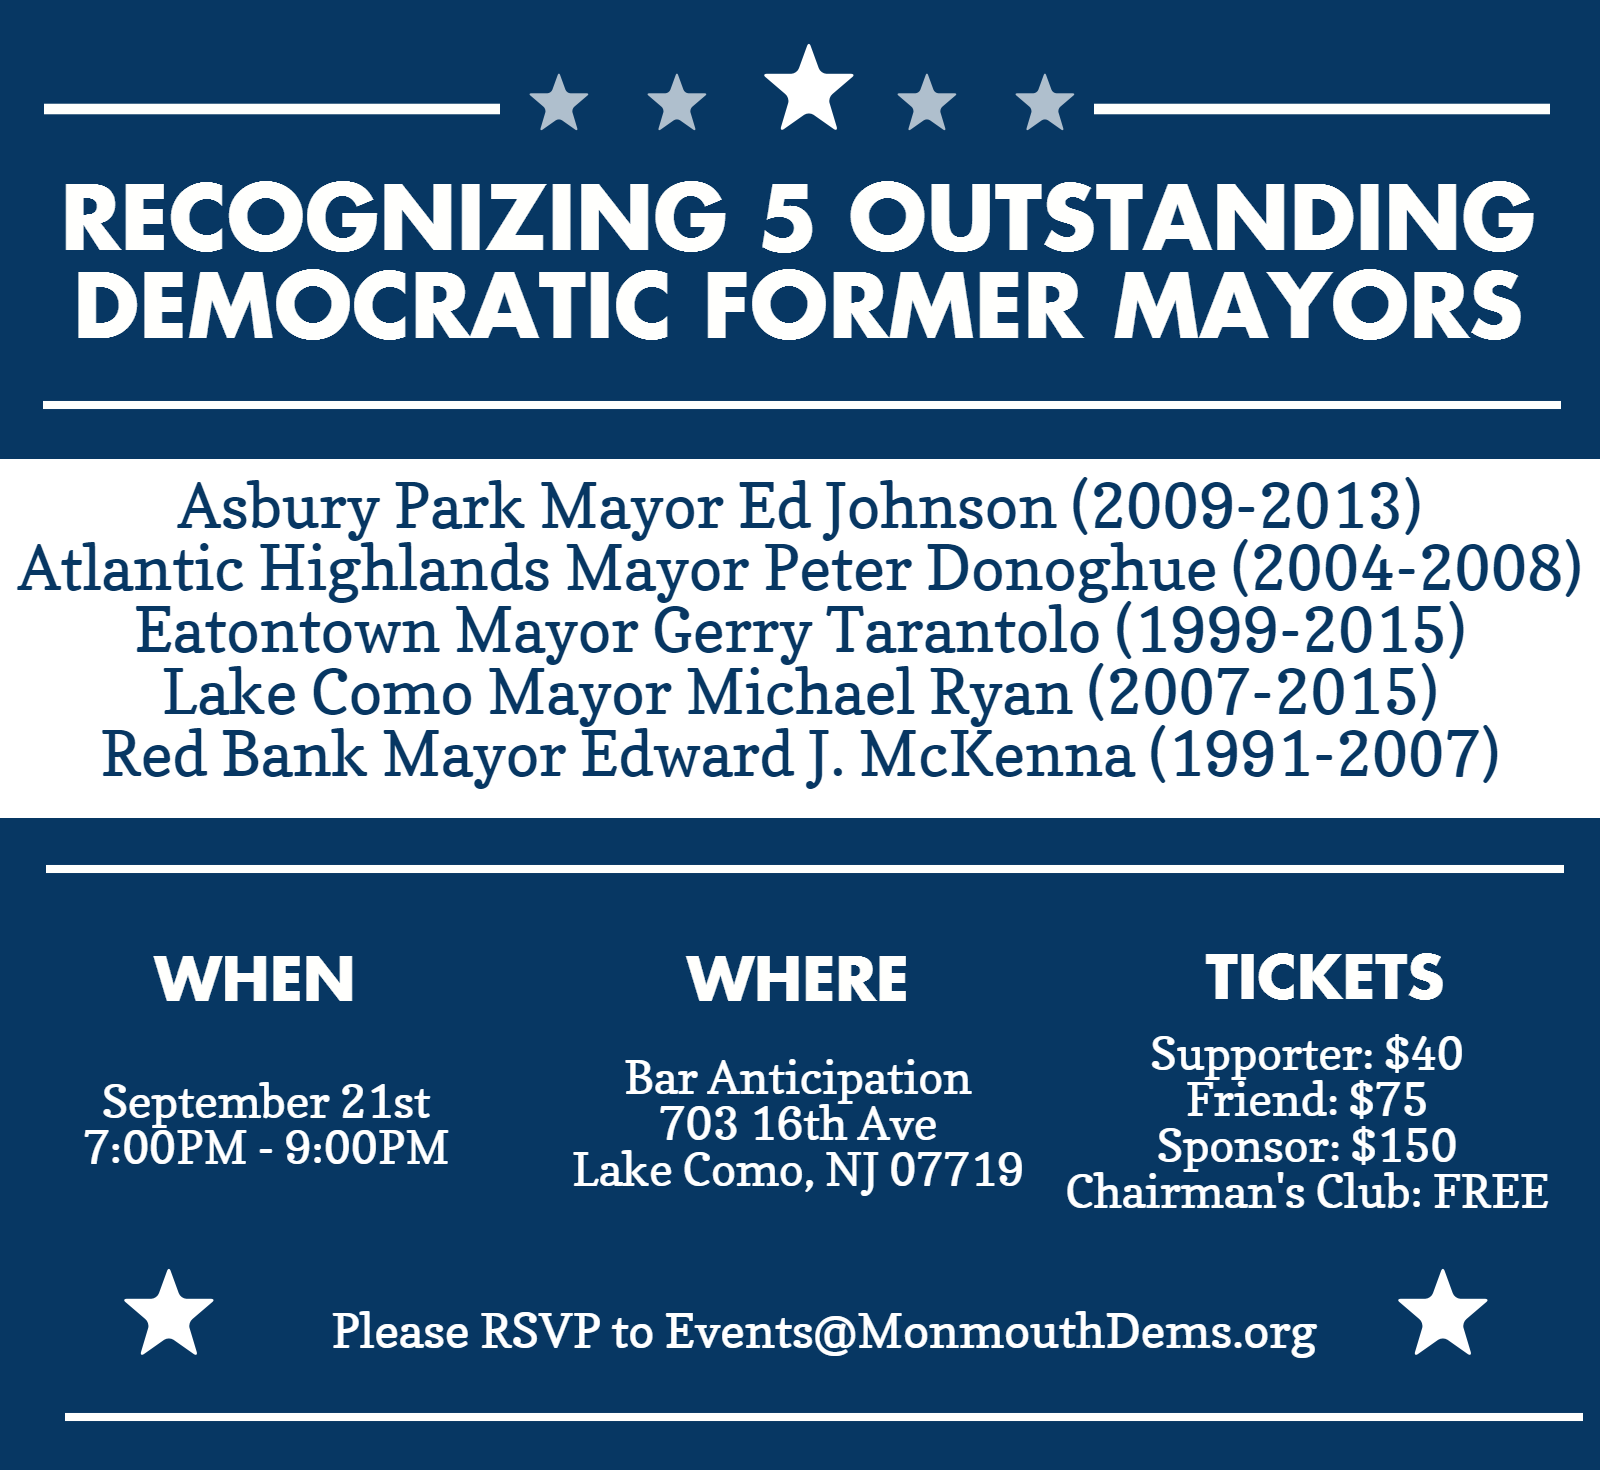 Former_Mayors_Event_(1).png